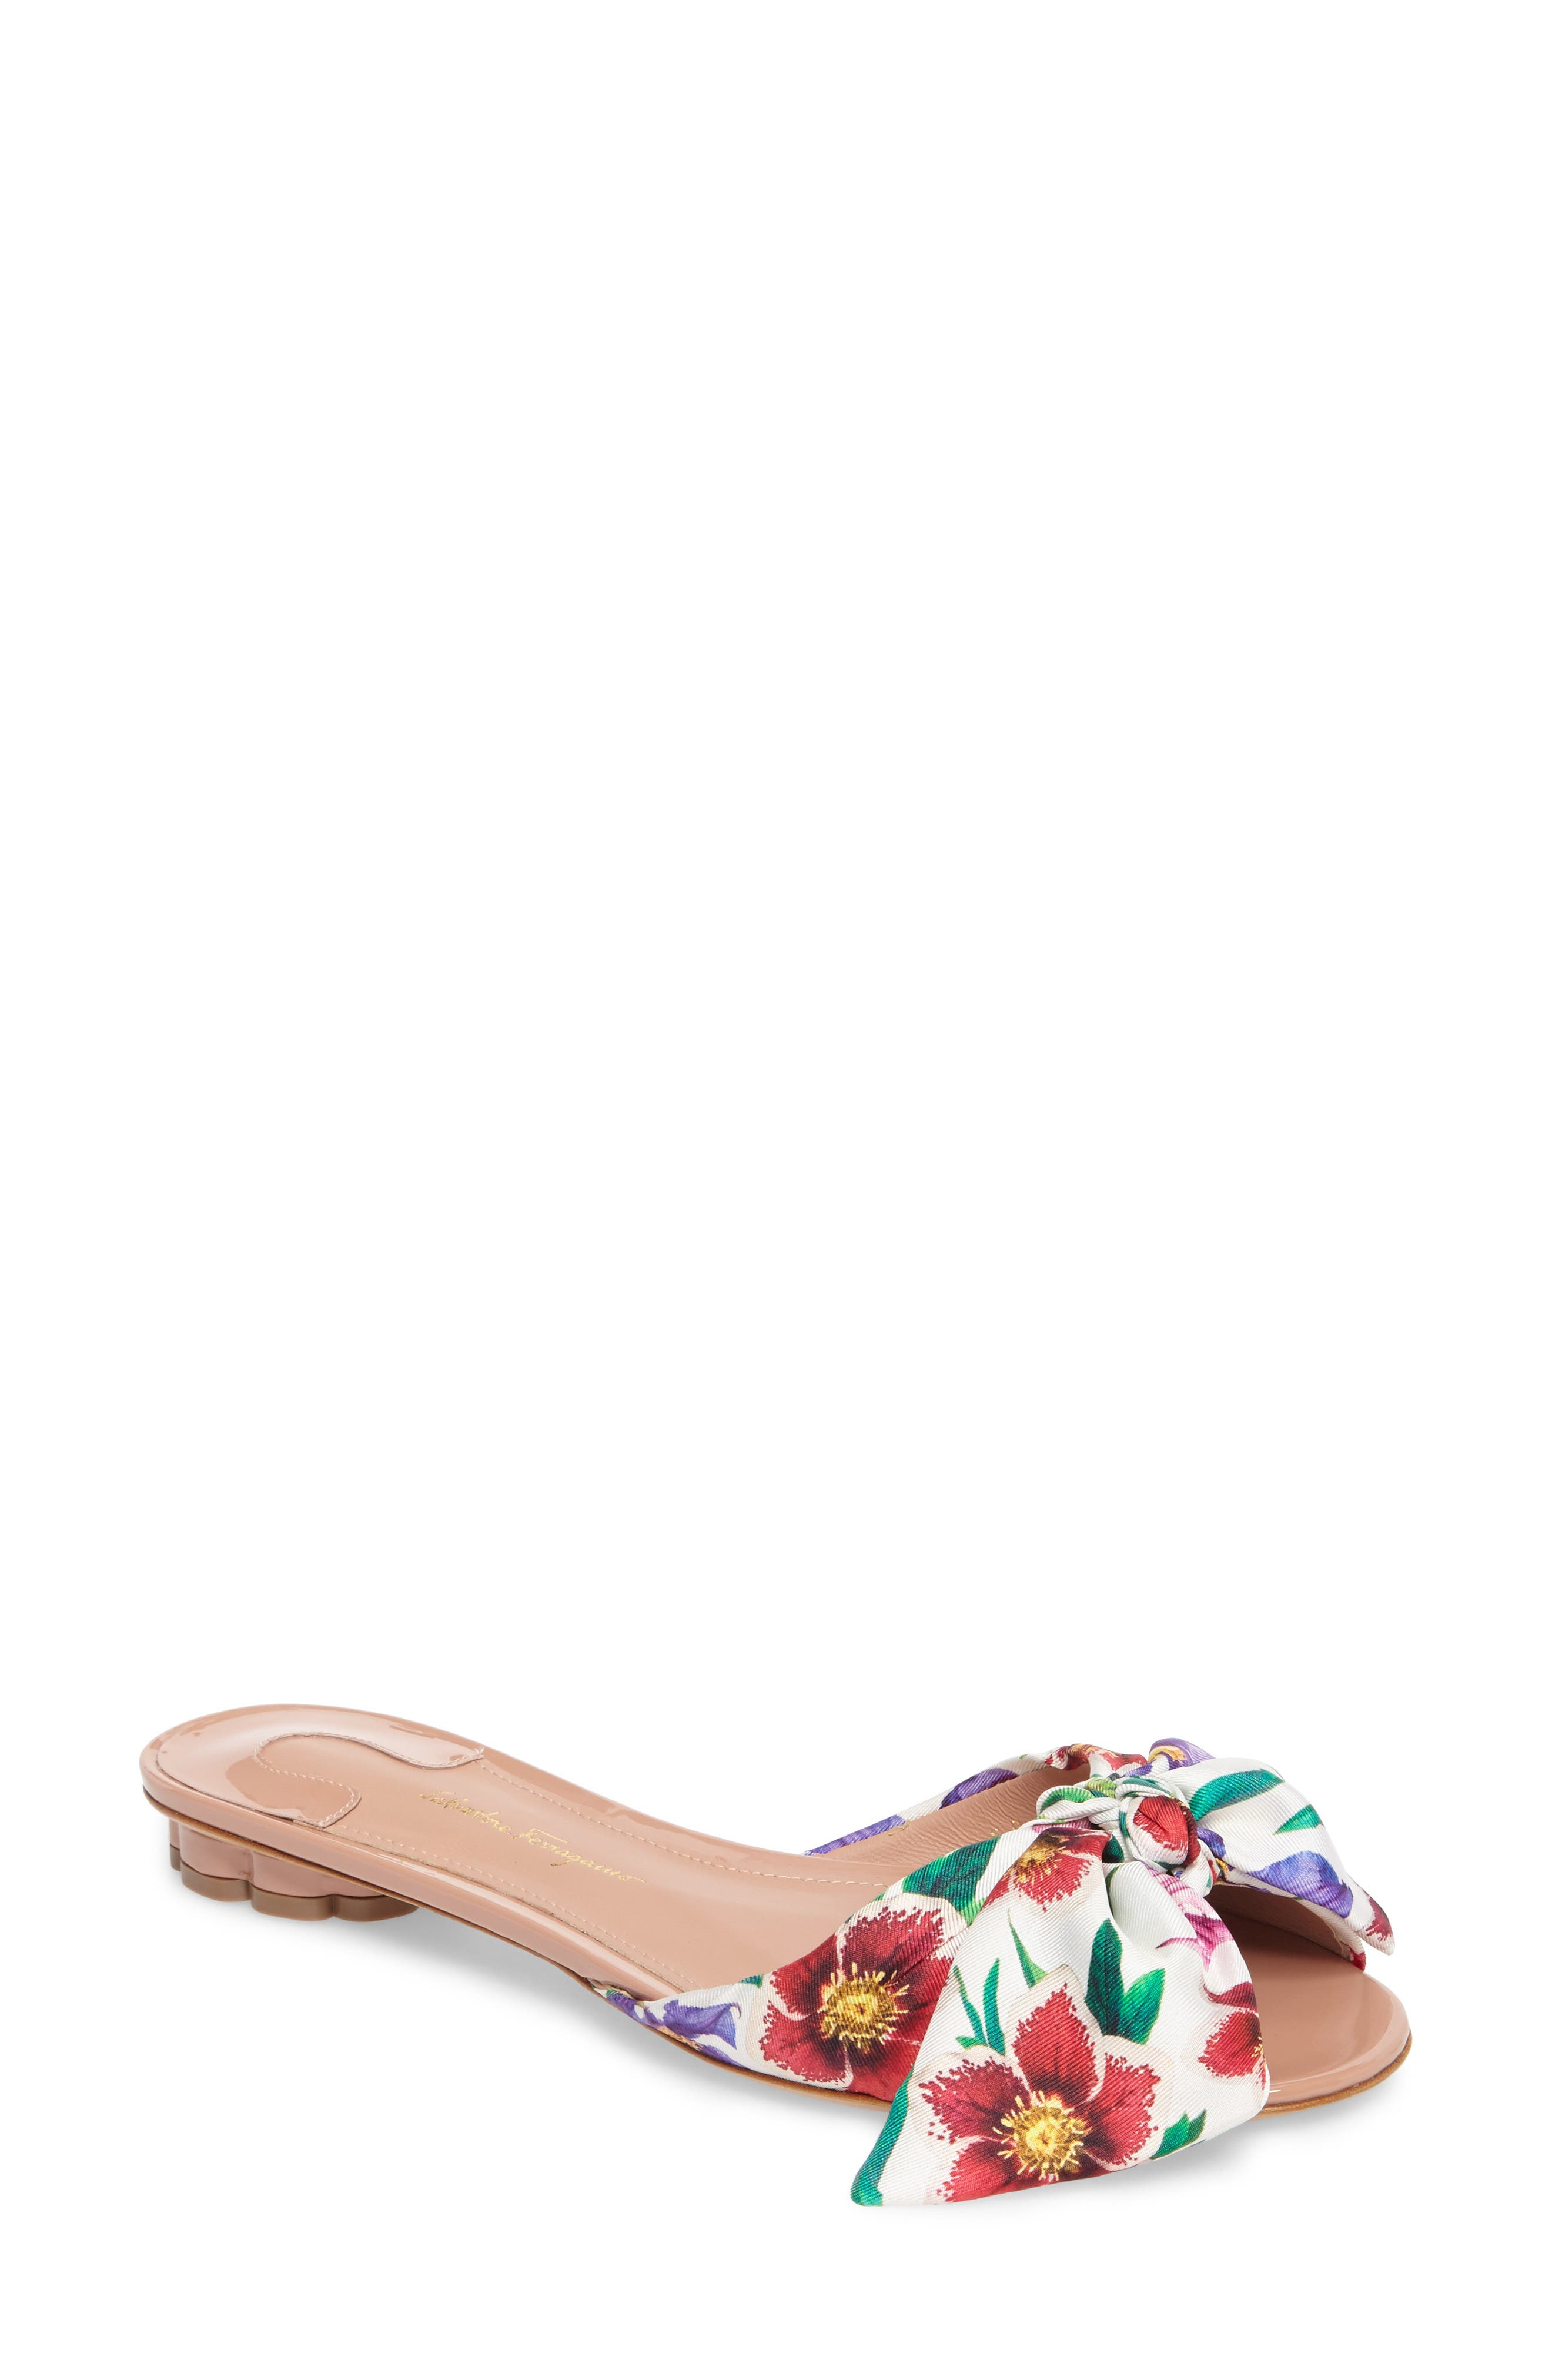 Salvatore Ferragamo Bow Sandal (Women)